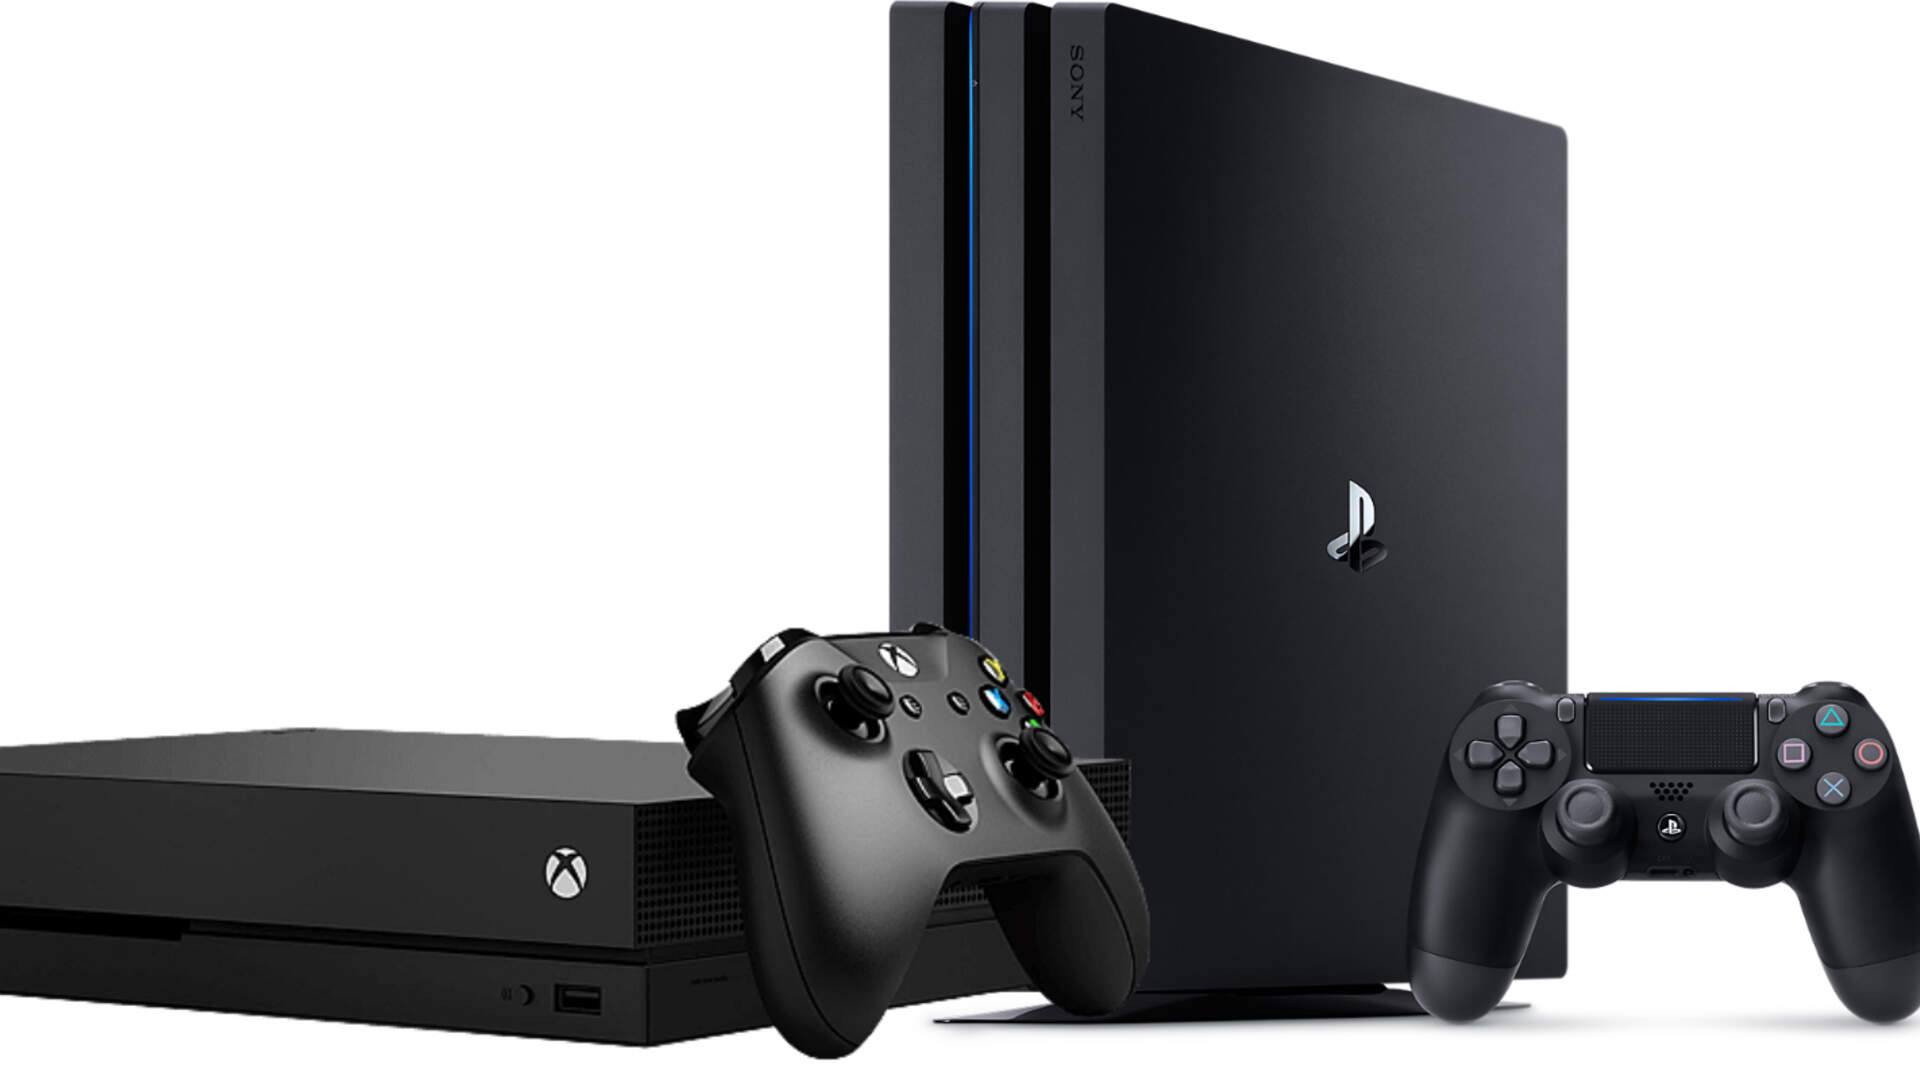 Report: Nintendo, Microsoft, and Sony Have 30 Days to Remove Warranty-Voiding Stickers or Face 'Legal Action' From FTC